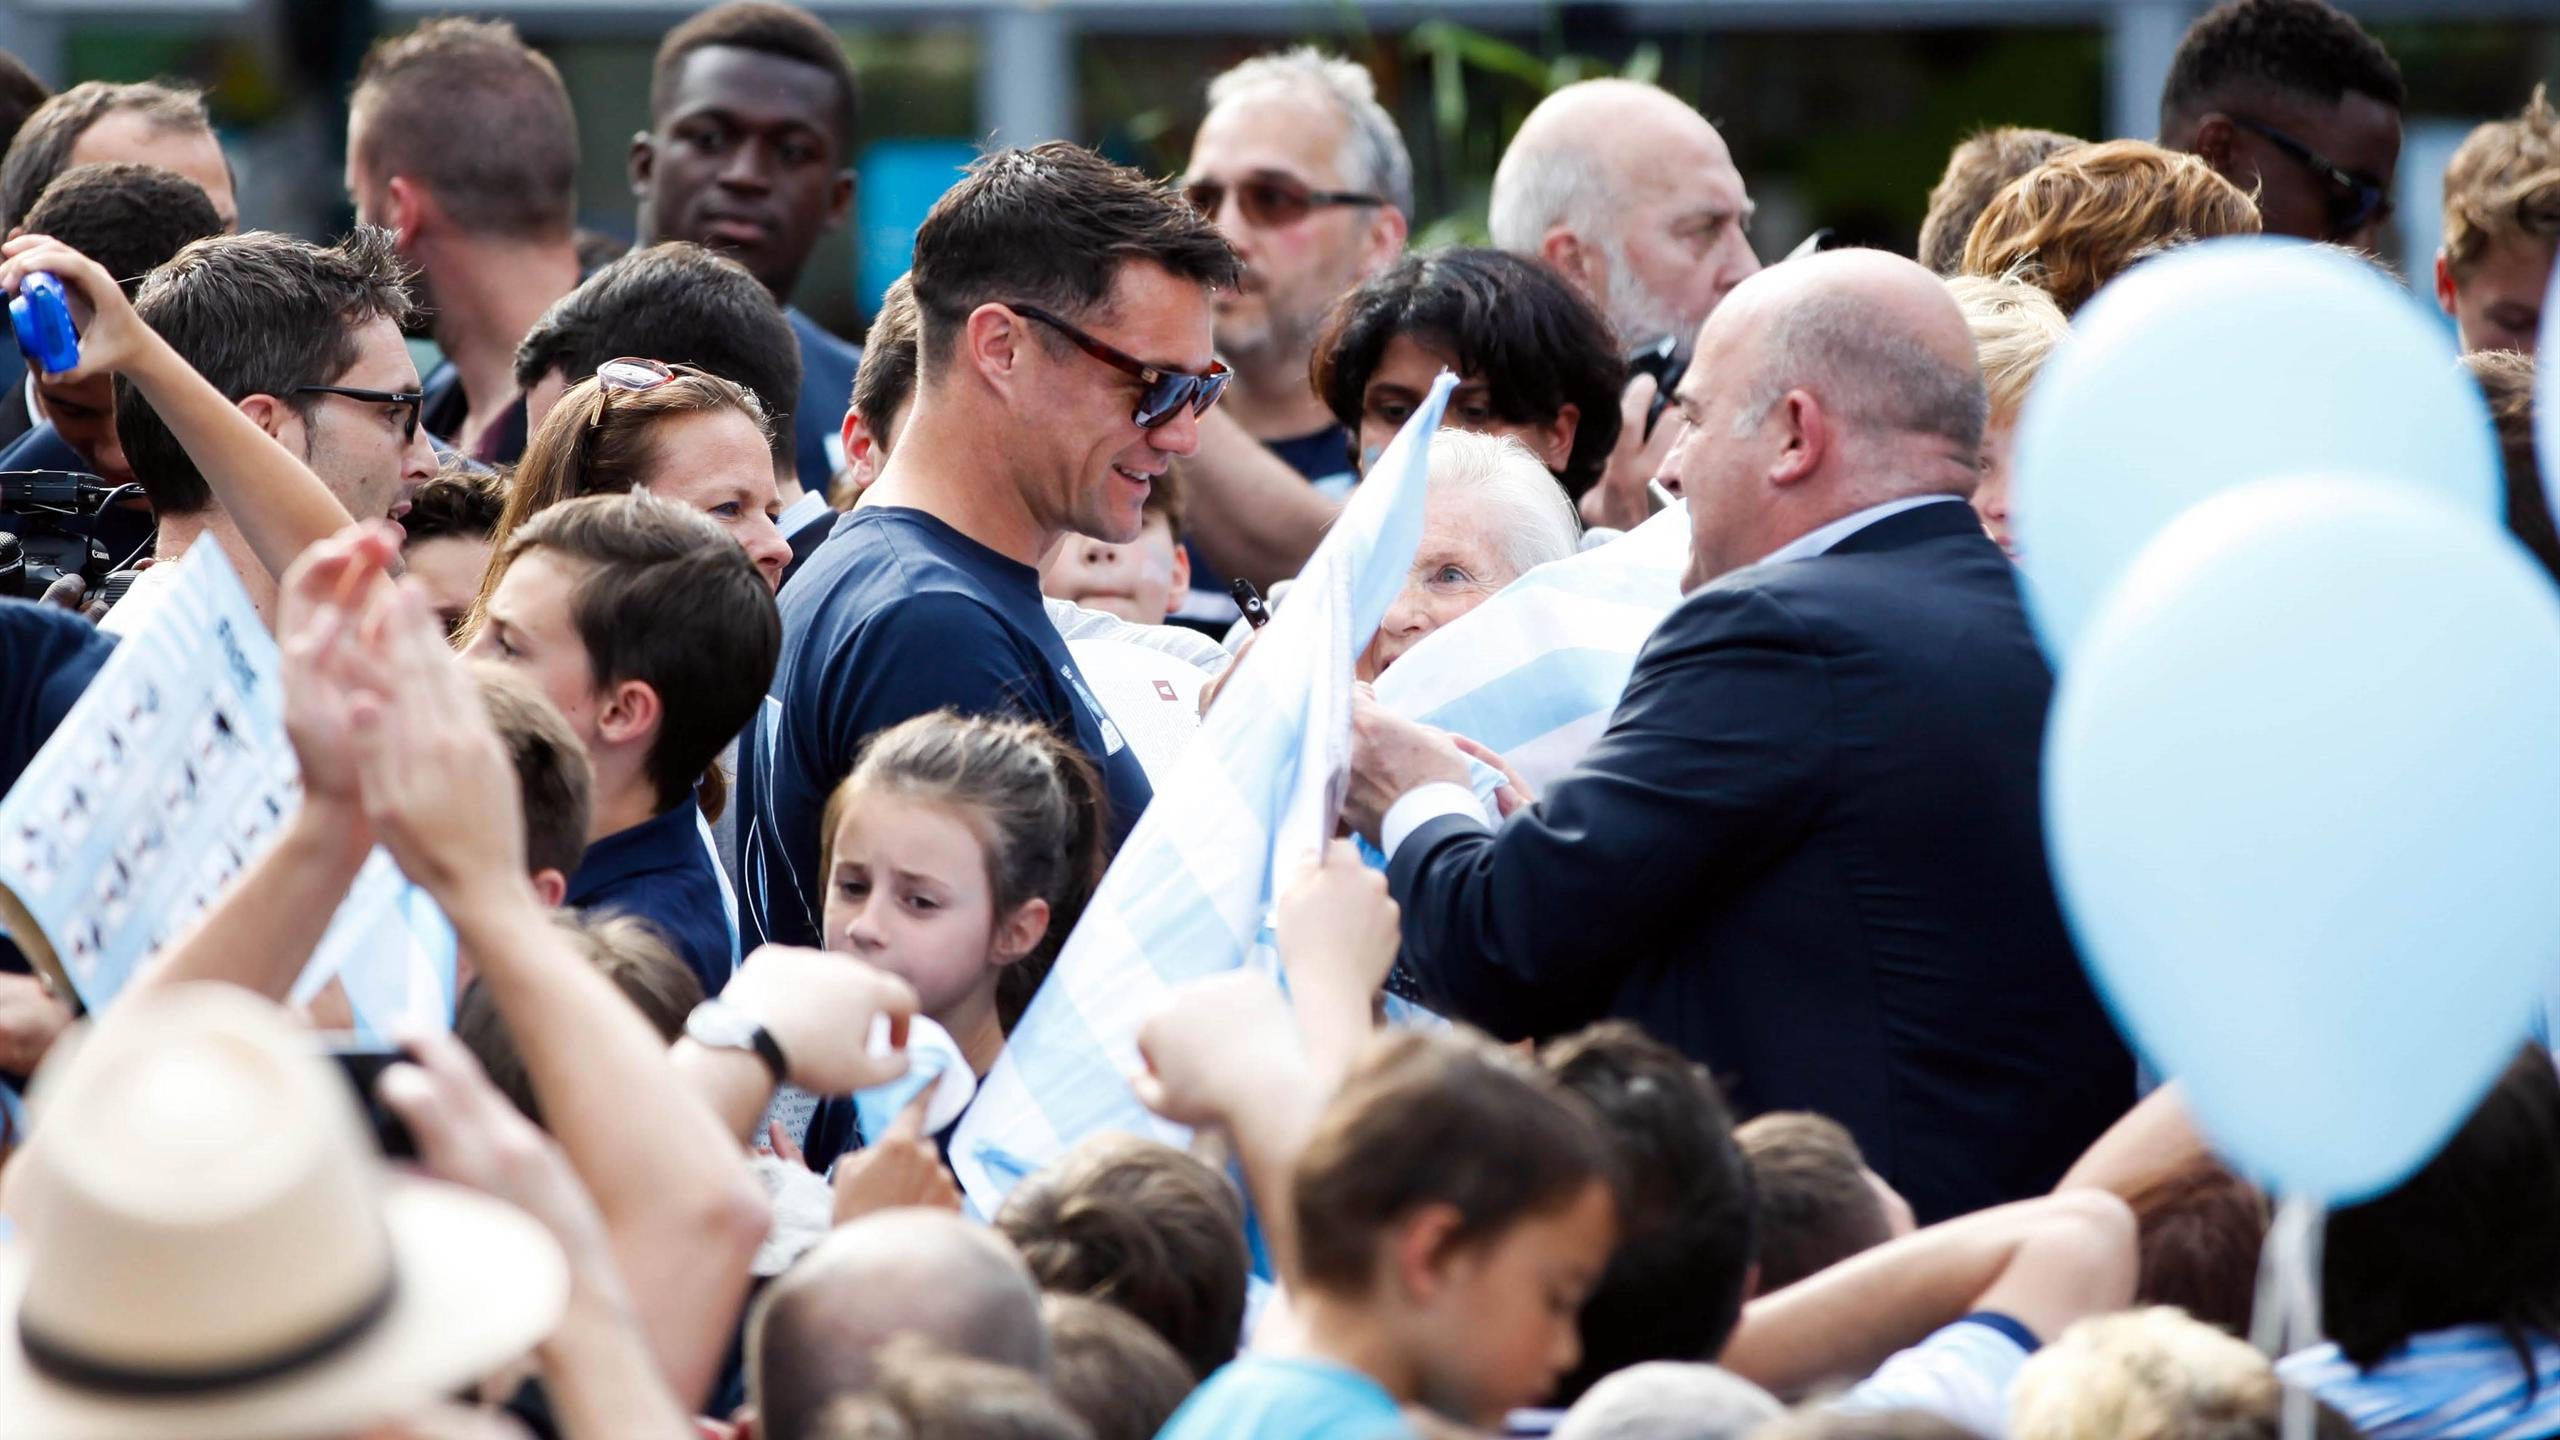 Dan Carter (Racing 92) - 28 juin 2016